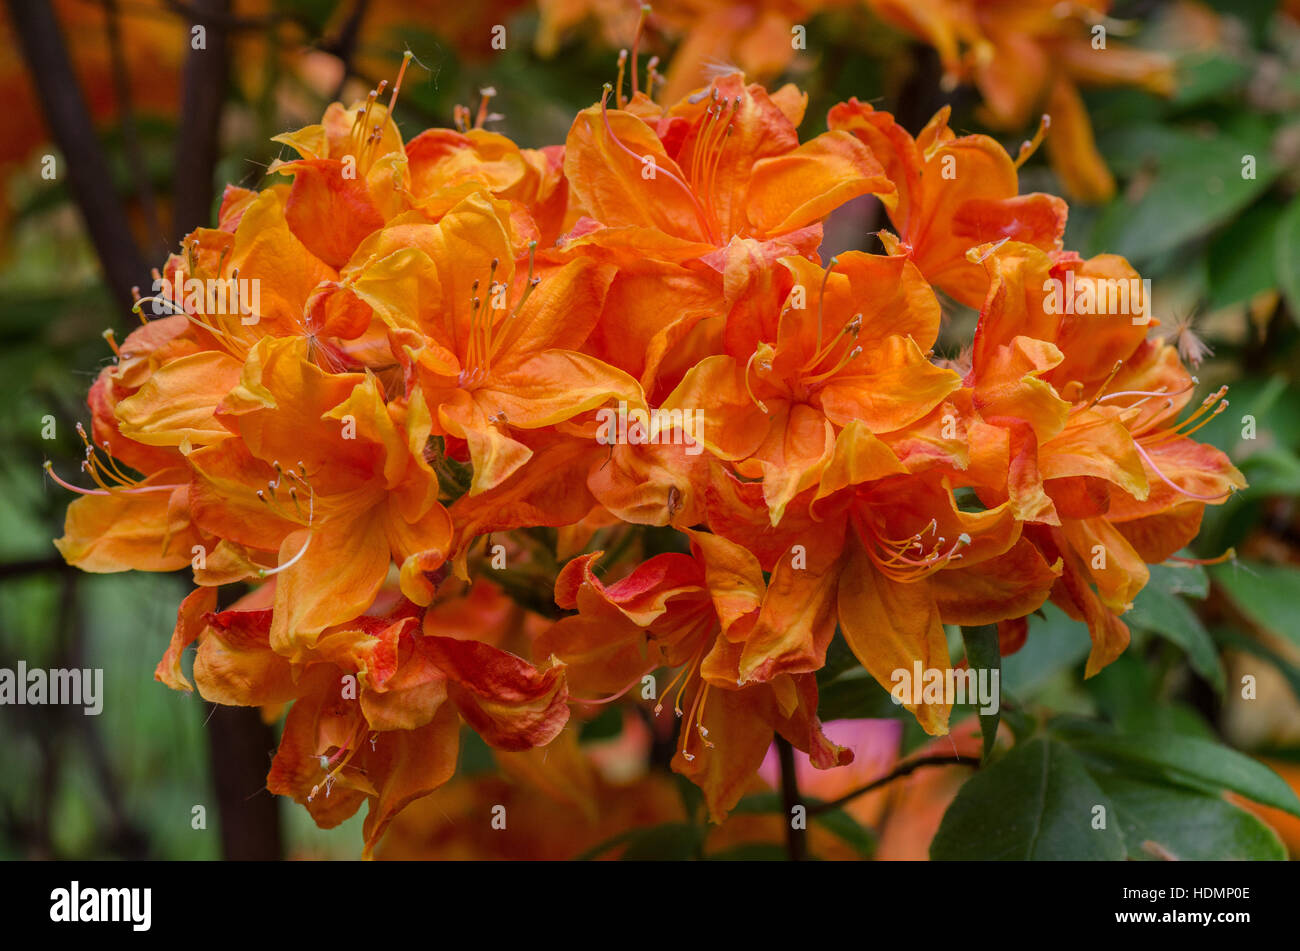 Salmon Colored Rich Rhododendron Flowers Stock Photos & Salmon ...